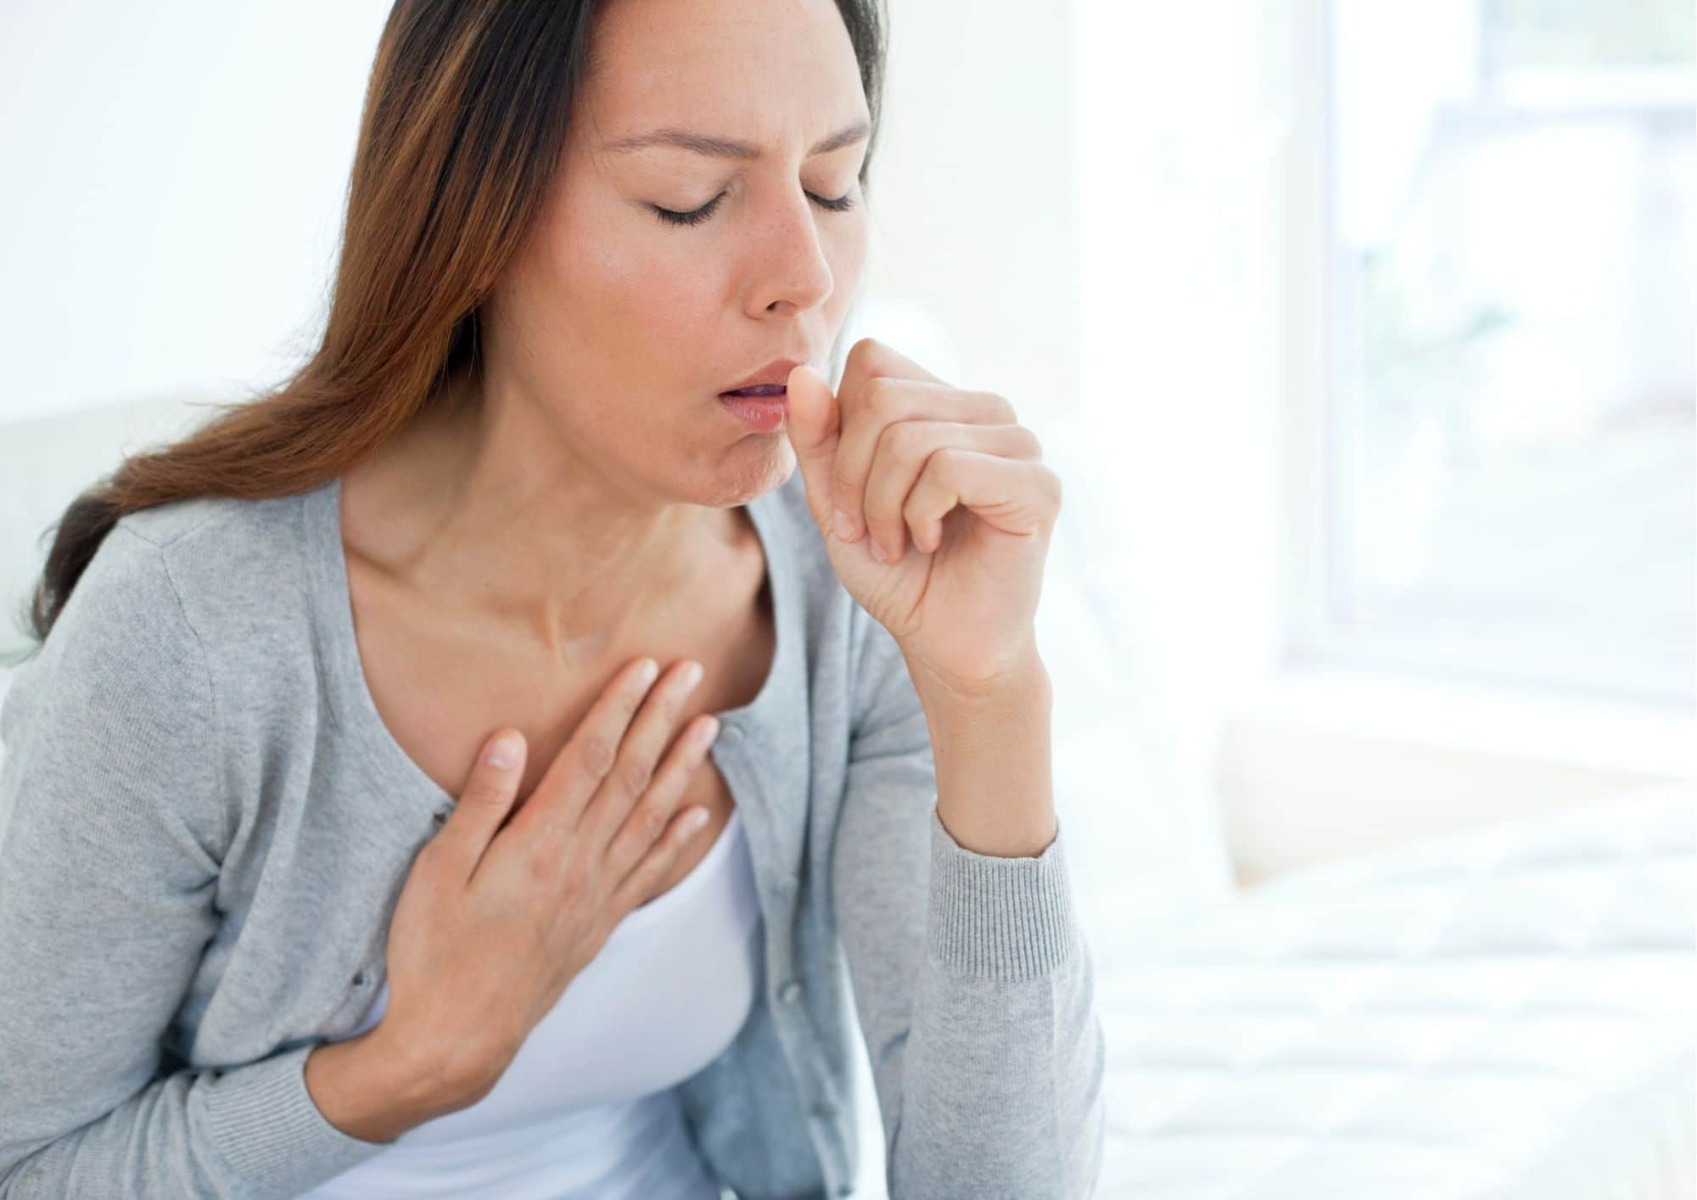 Woman coughing due to lung disease